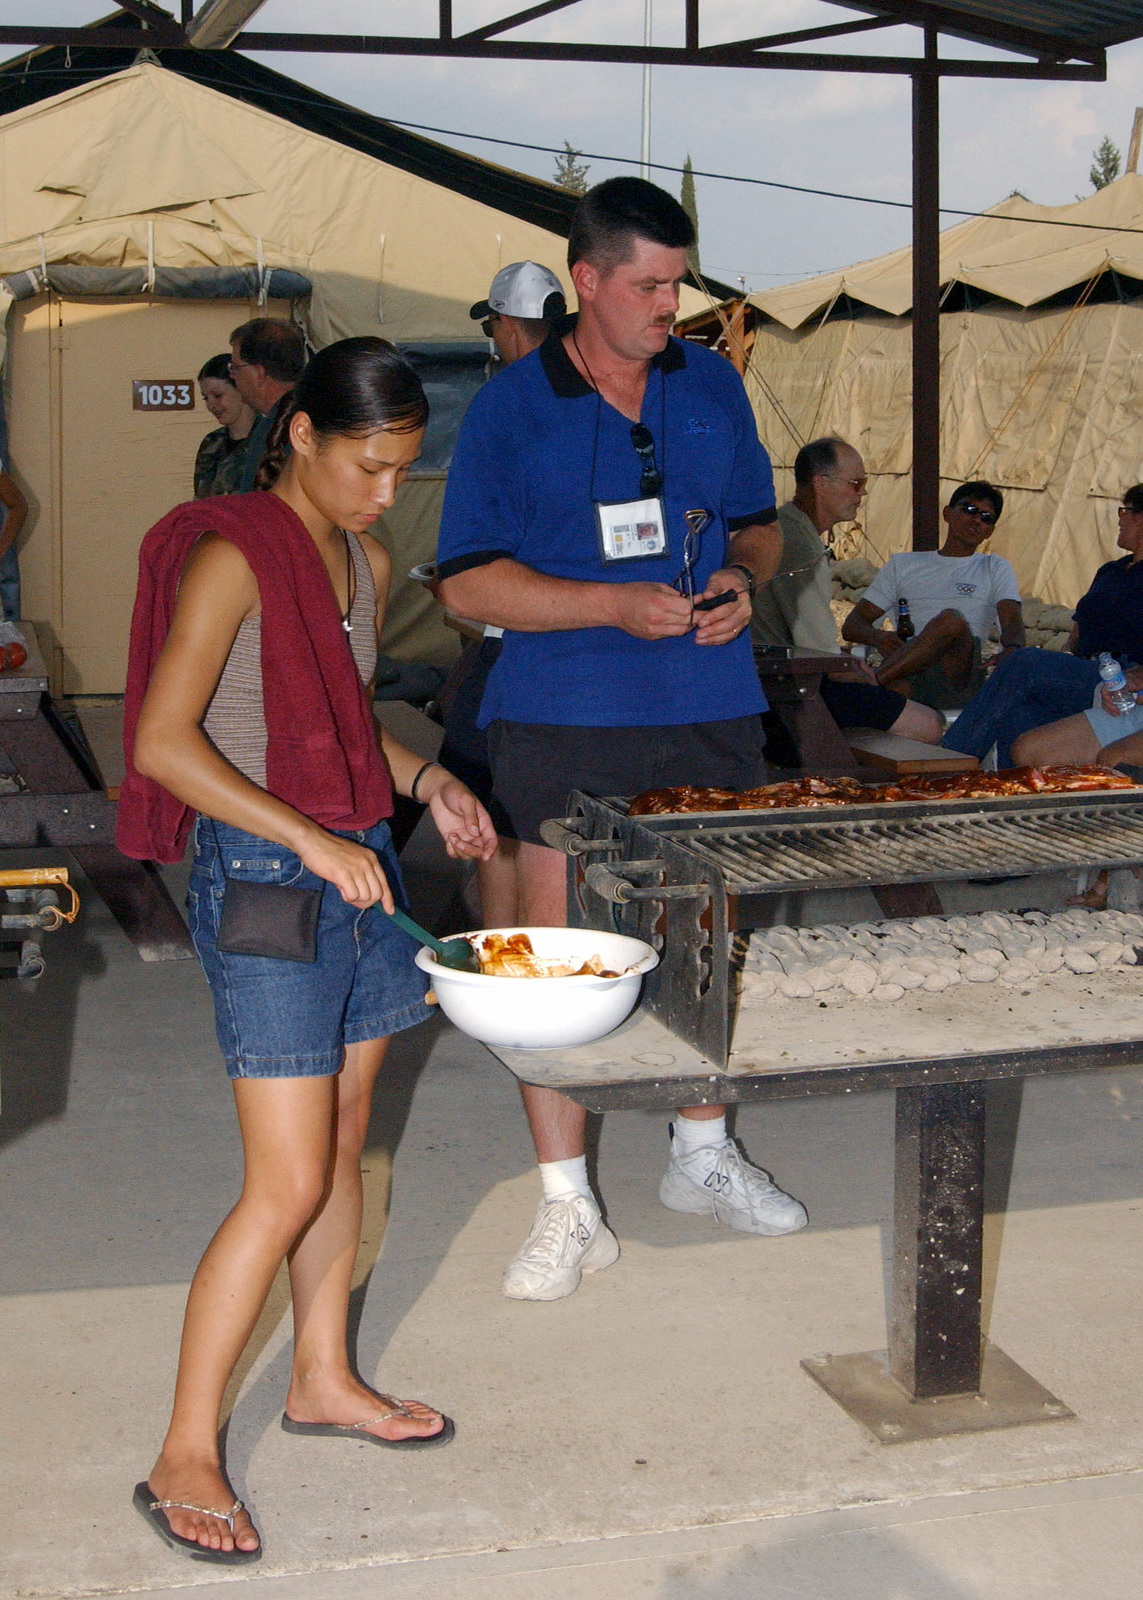 US Air Force (USAF) SENIOR AIRMAN (SRA) Marlena Cabrera-Smith and Technical Sergeant (TSGT) Buck Connor toss ribs on the grill for the 10th Expeditionary Medical Squadron (EMS) Deployment Birthday Party, at a Tent City, on Incirlik Air Base (AB), Turkey, during Operation NORTHERN WATCH